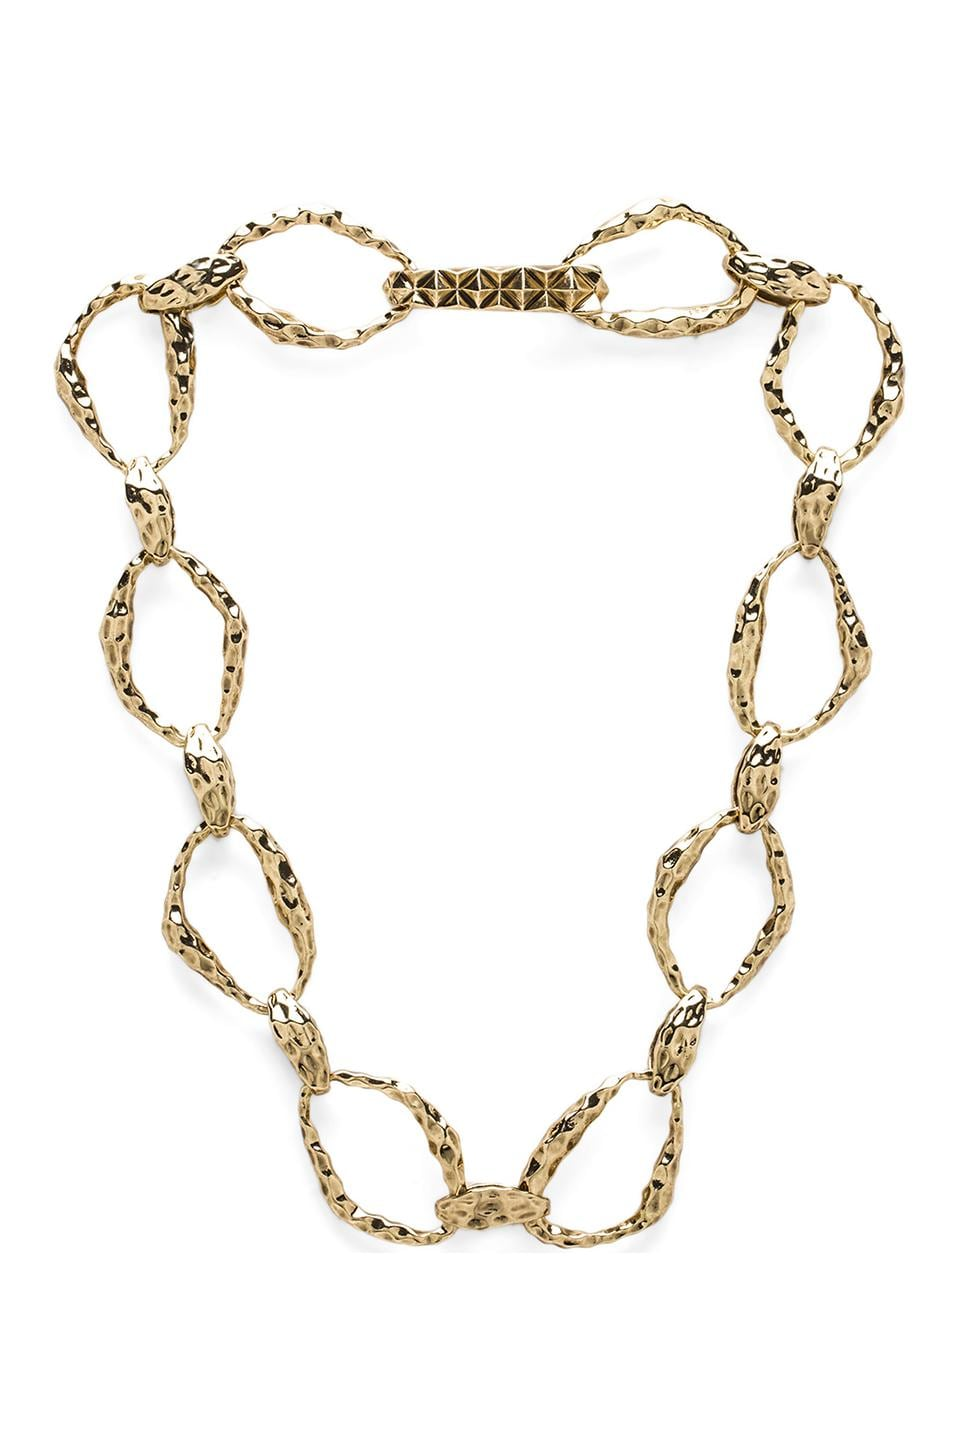 House of Harlow 1960 House of Harlow Textured Link Necklace in Gold